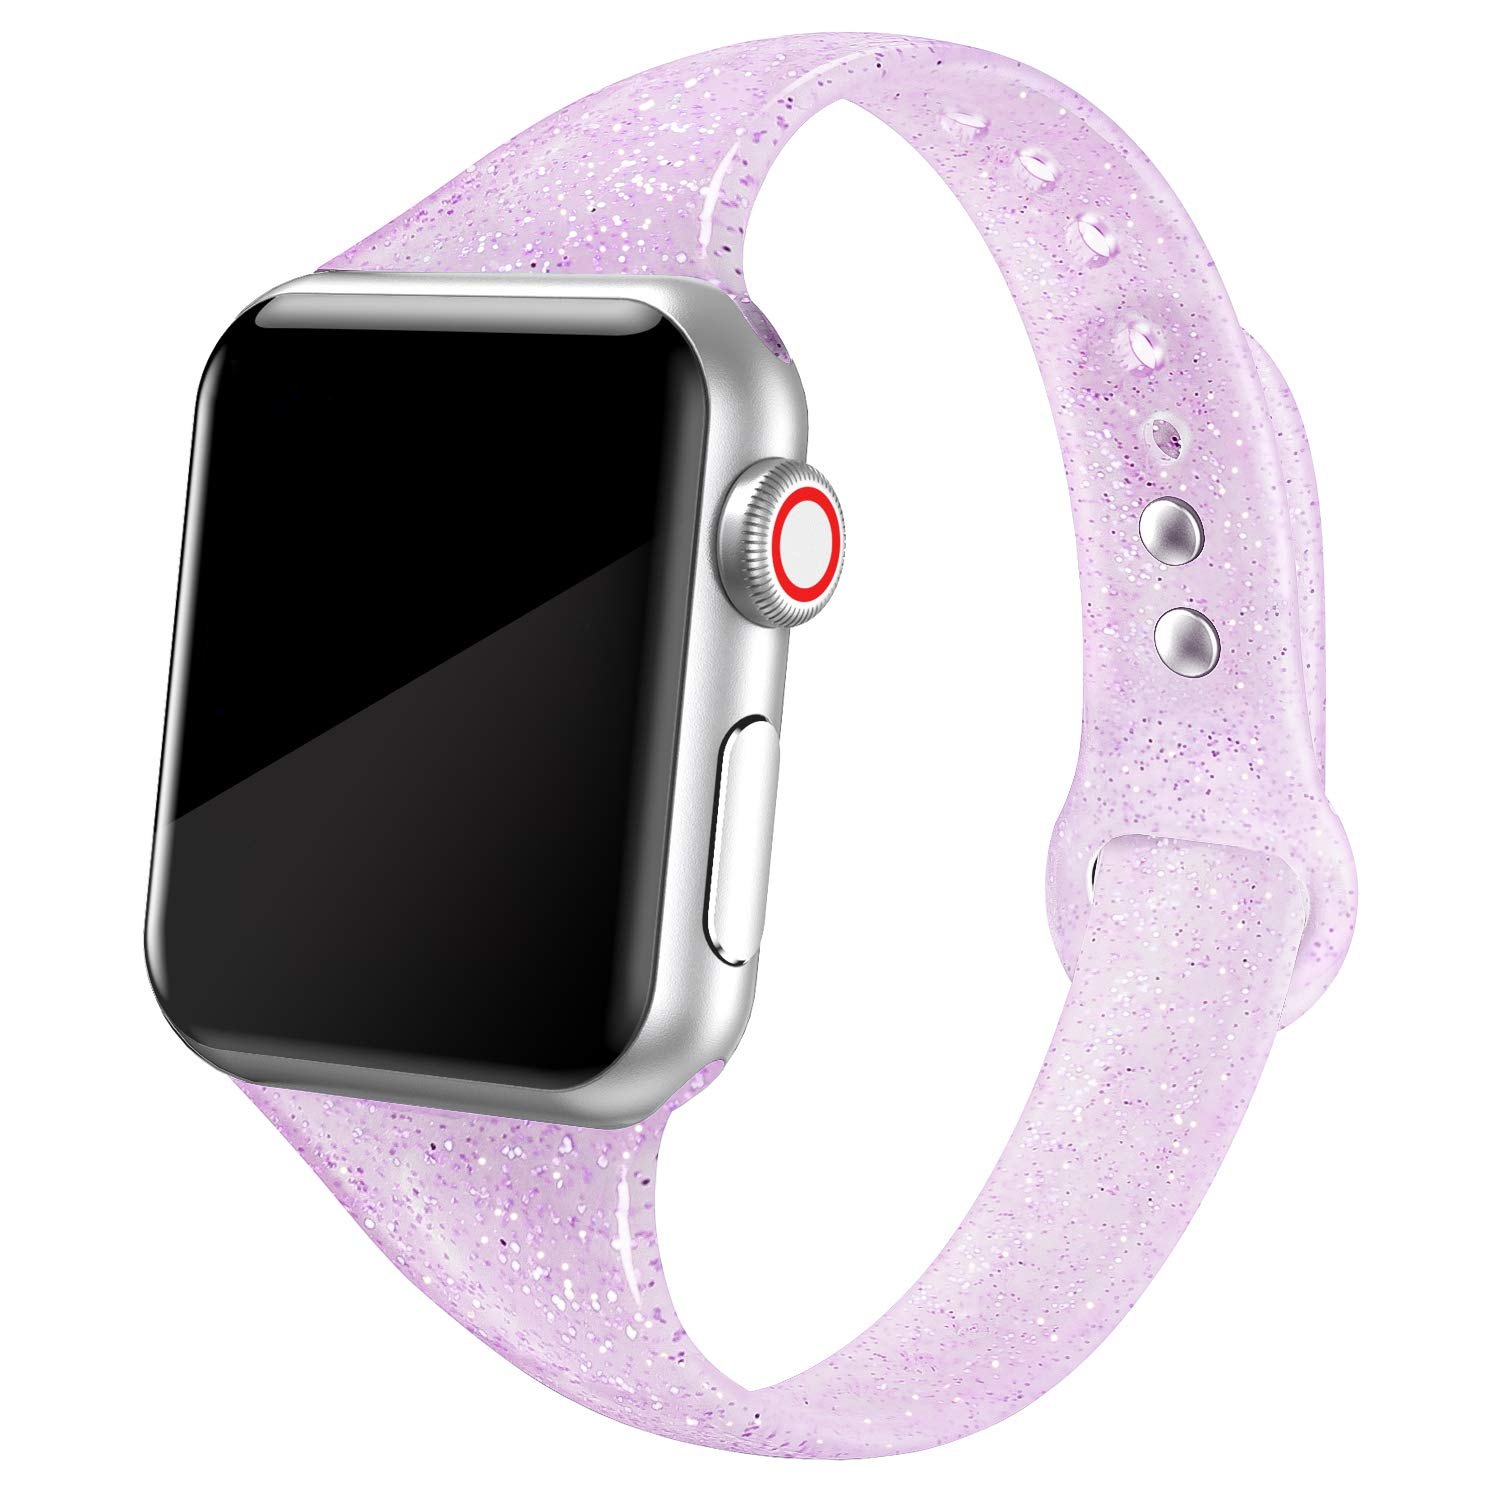 Malla Silicona para Apple Watch (38/40mm) SWEES [7T8XSNC3]